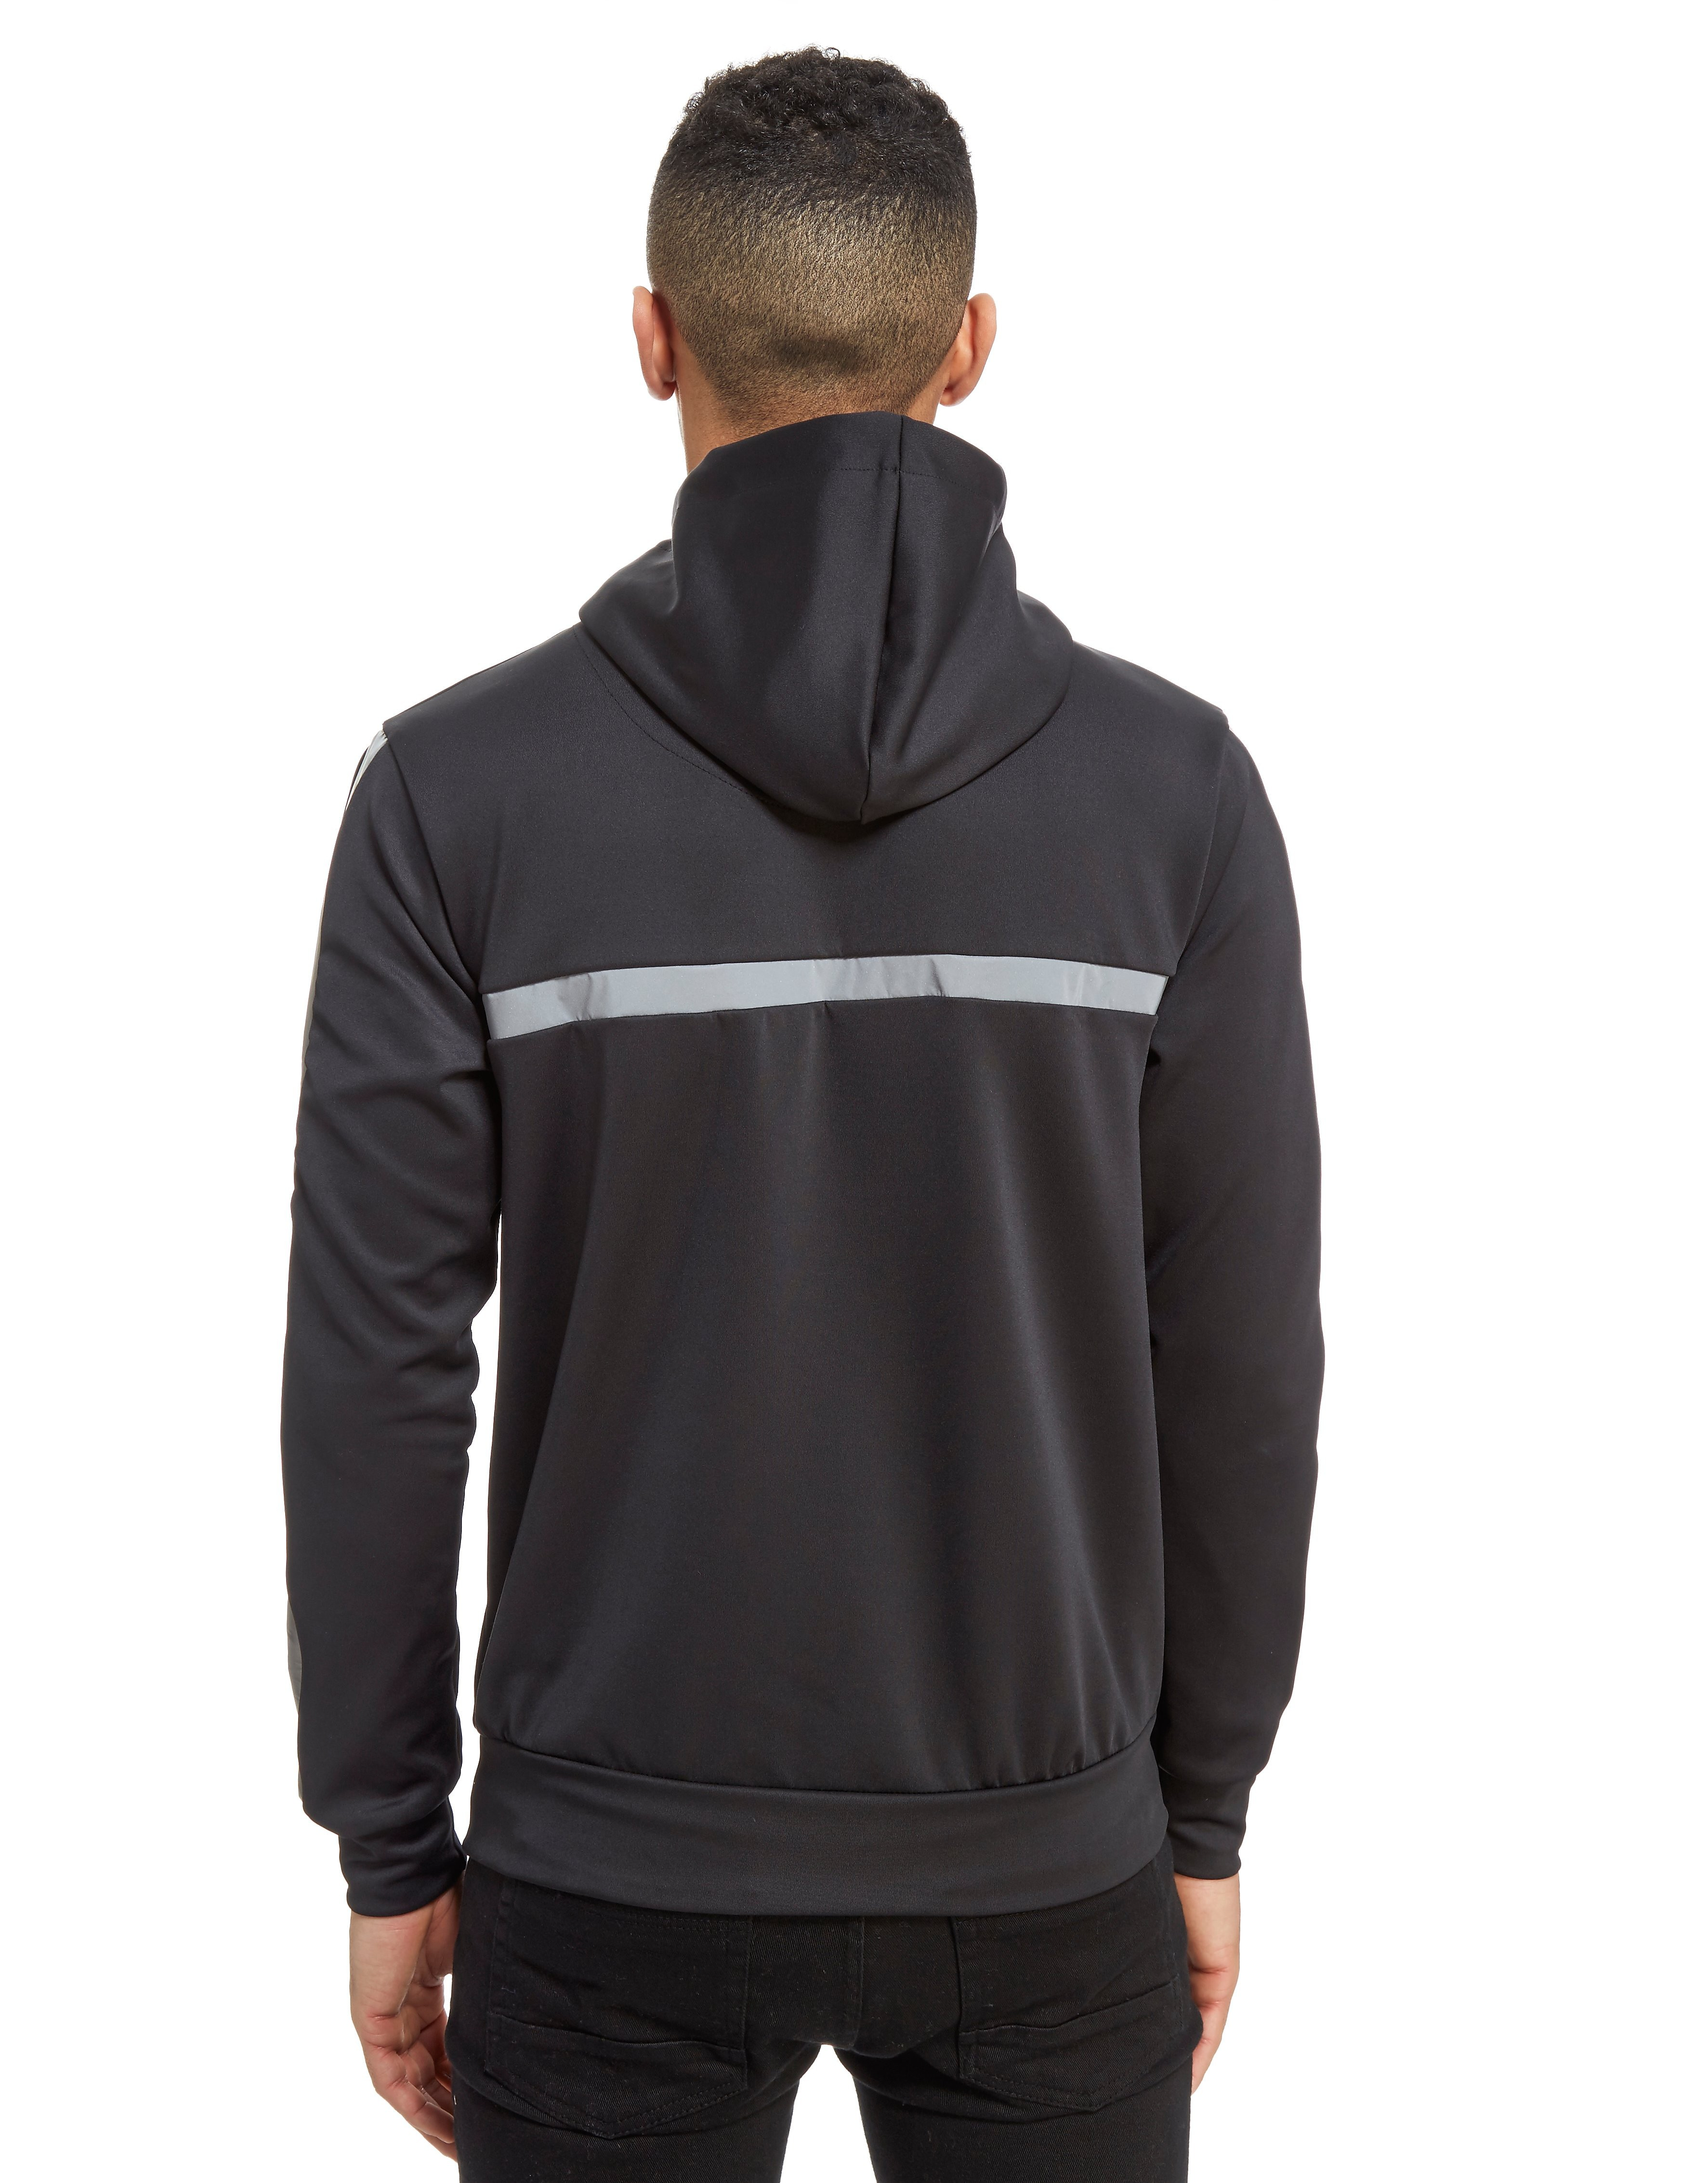 Supply & Demand Reflective Tracker 1/4 Zip Hoodie